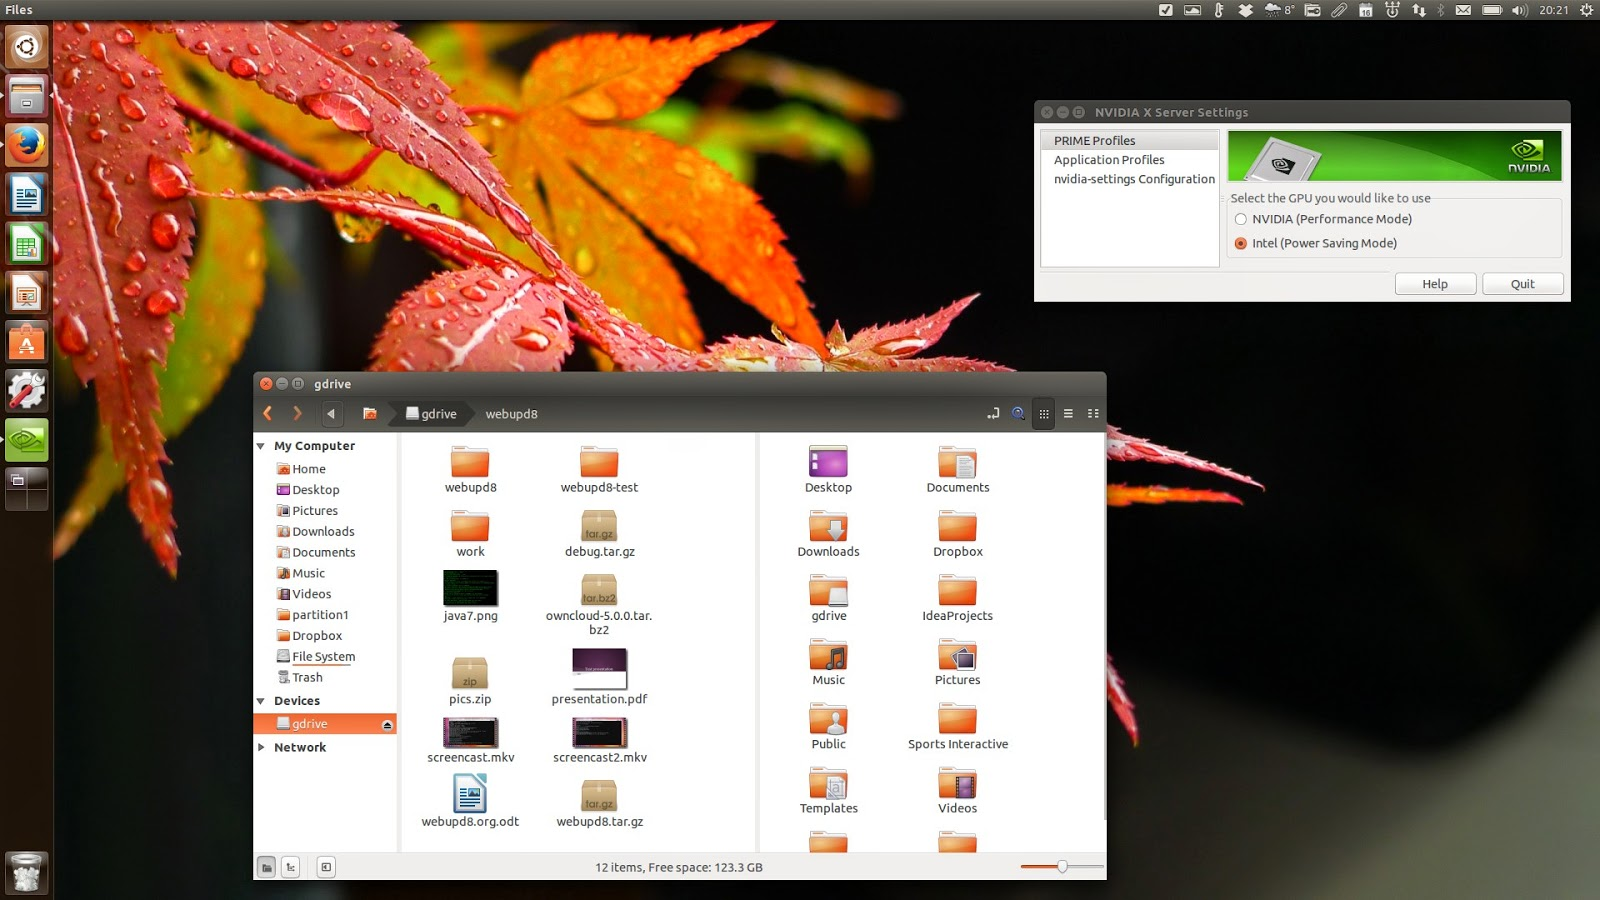 Ubuntu 14.04 things to do